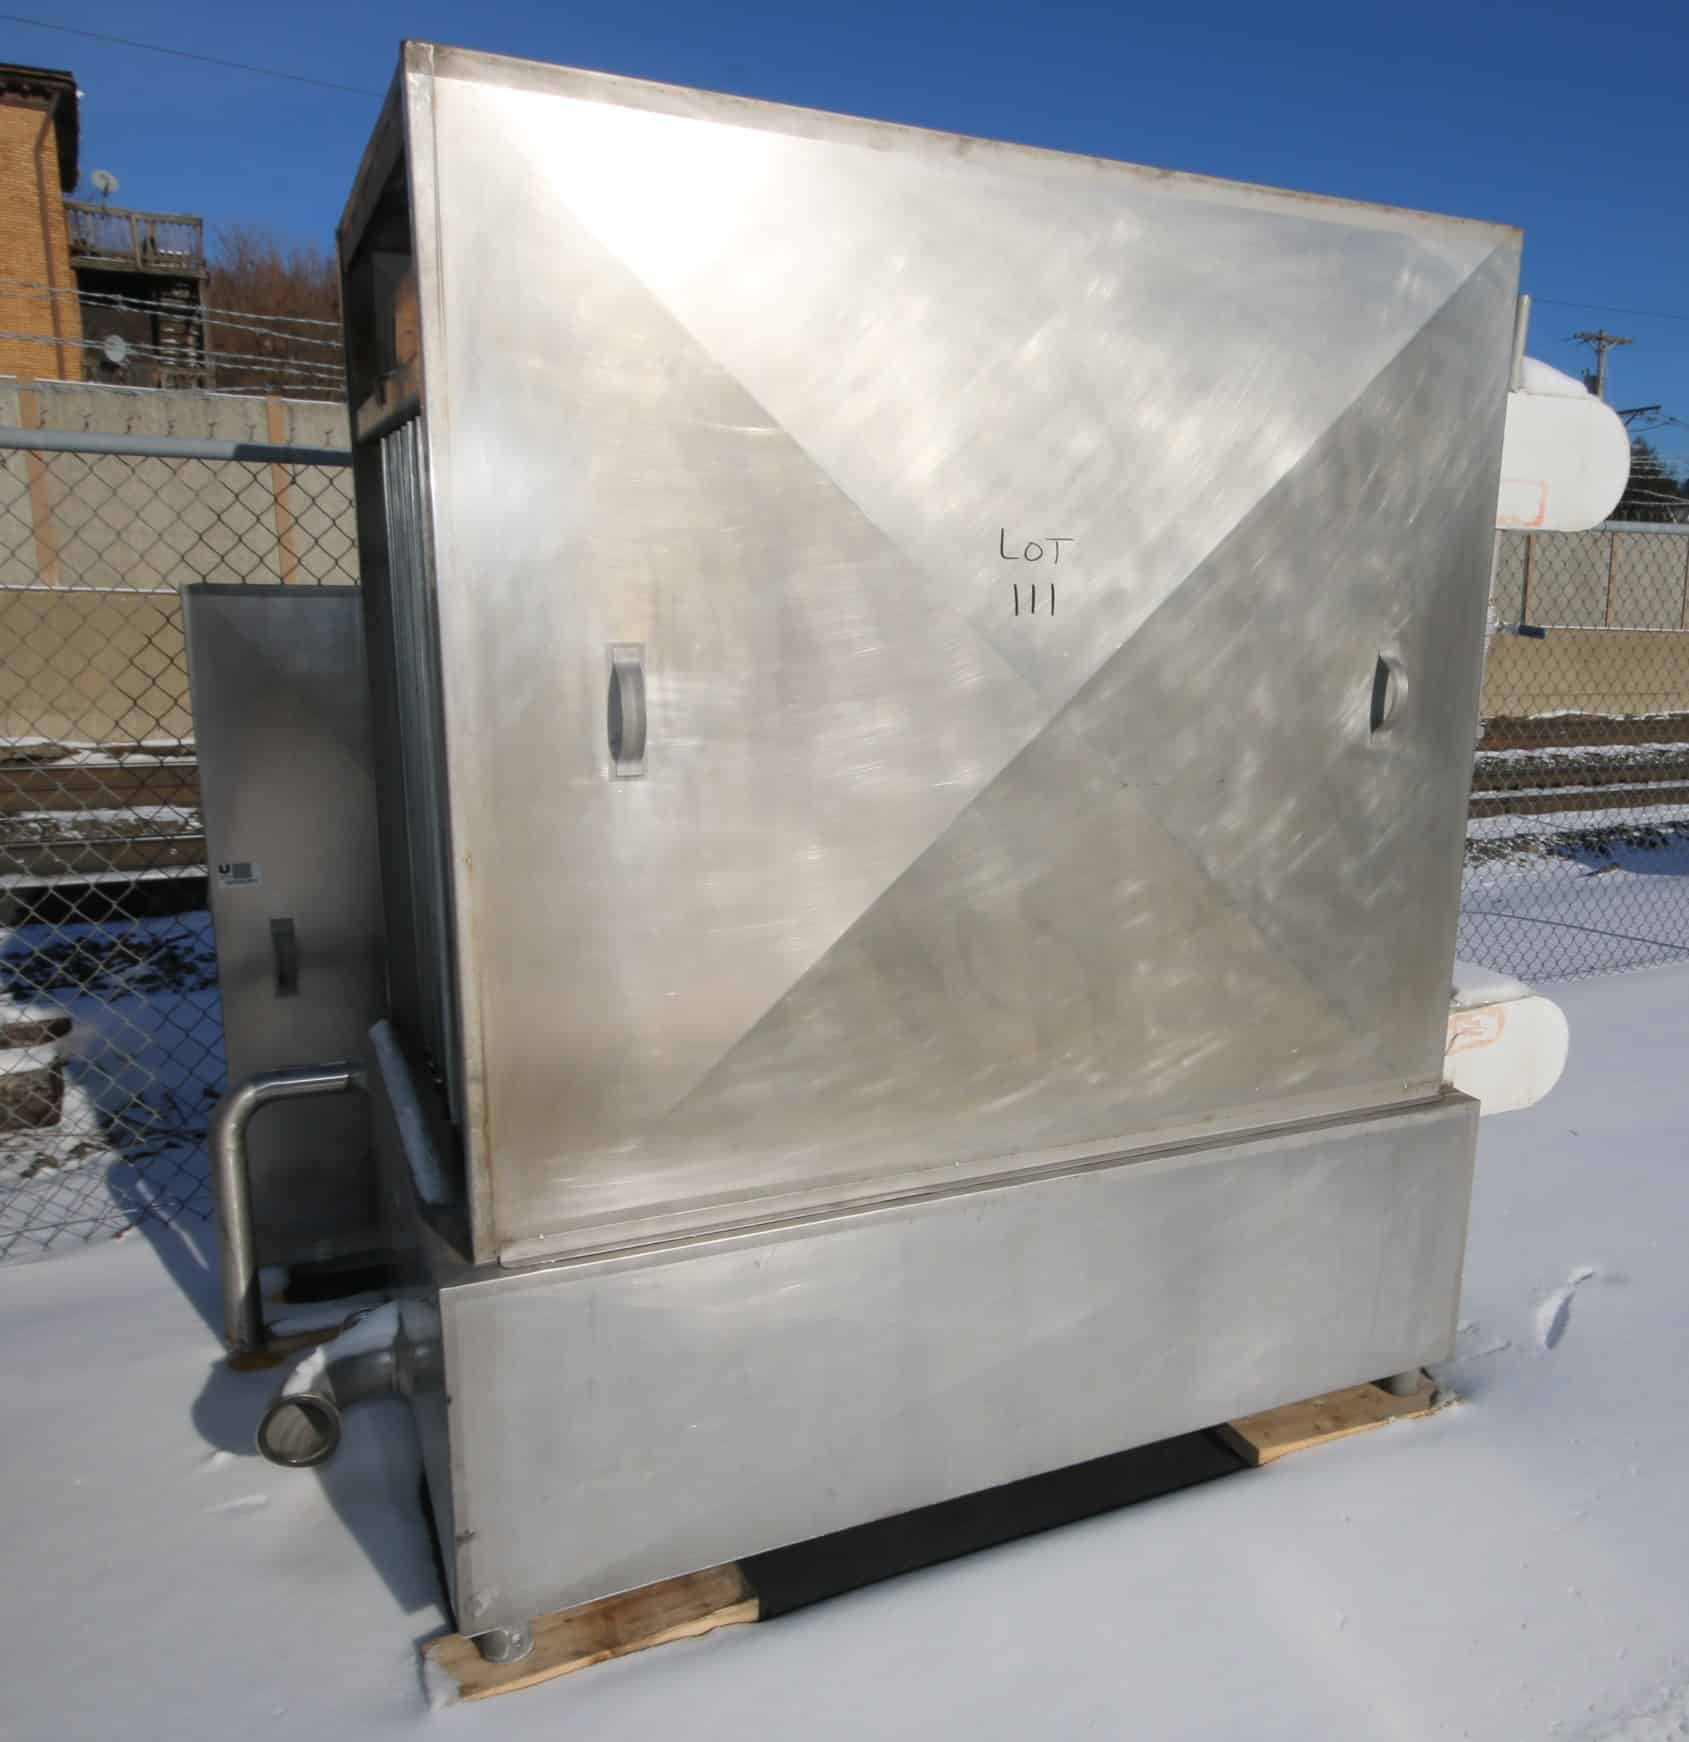 "Chester Jensen S/S Falling Film Plate Chiller, B-8OT-8-32, S/N 9063-P, Ammonia Refrigerated, All S/S, (8) Plates (Overall Dimensions Aprox. 49"" W x 7 ft. L x 83"" H) (Formerly Used for Cooling HTST System)"